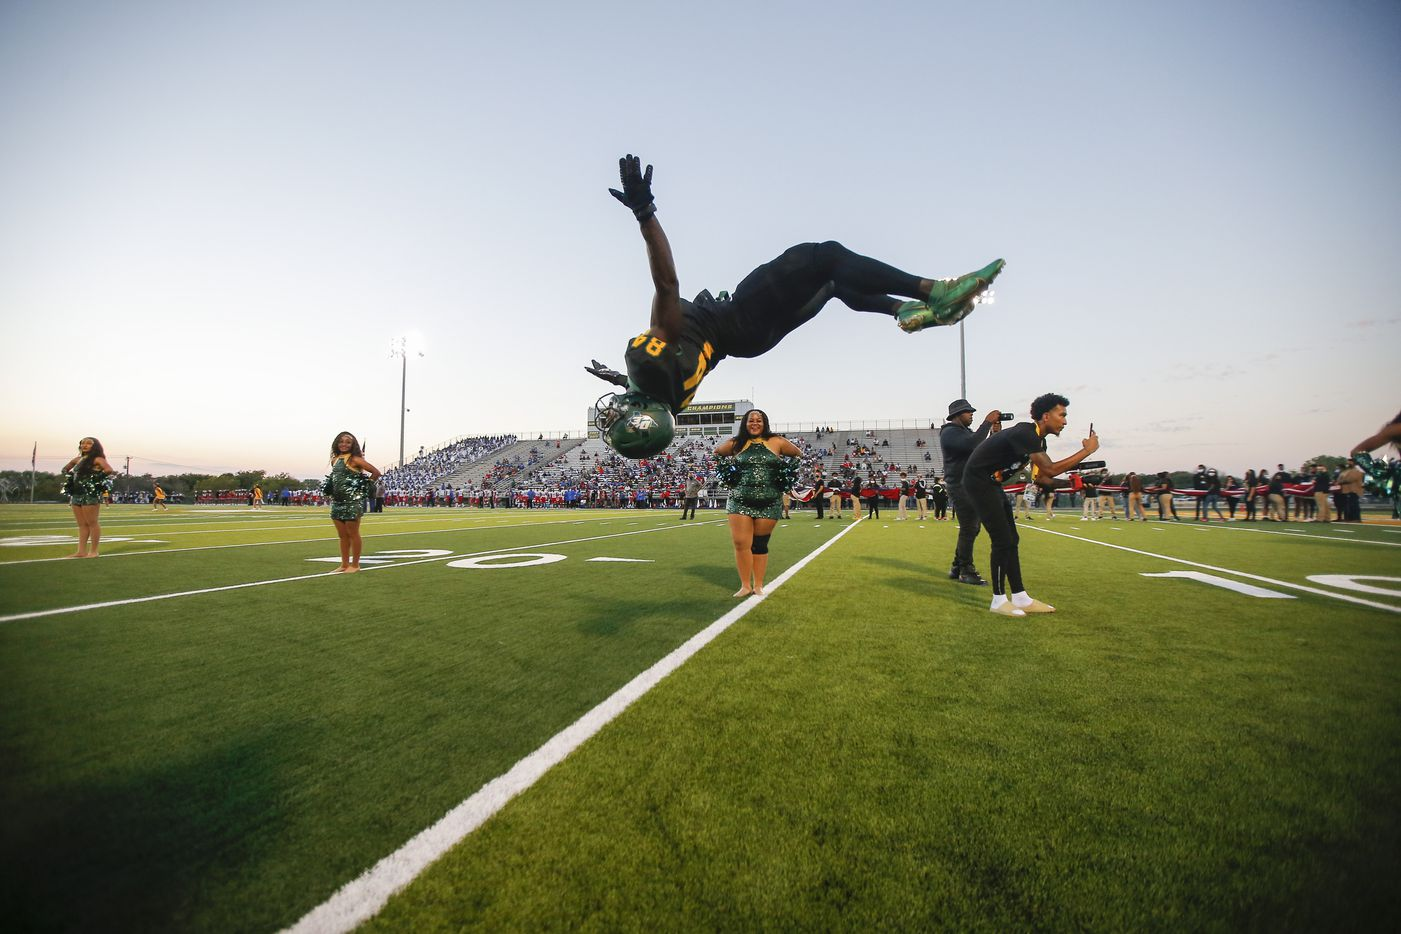 DeSoto senior wide receiver Marquis Wortham (84) does a back flip as he leads his teammates onto the field for the first half of a high school football game against Duncanville at DeSoto High School, Friday, September 17, 2021. (Brandon Wade/Special Contributor)